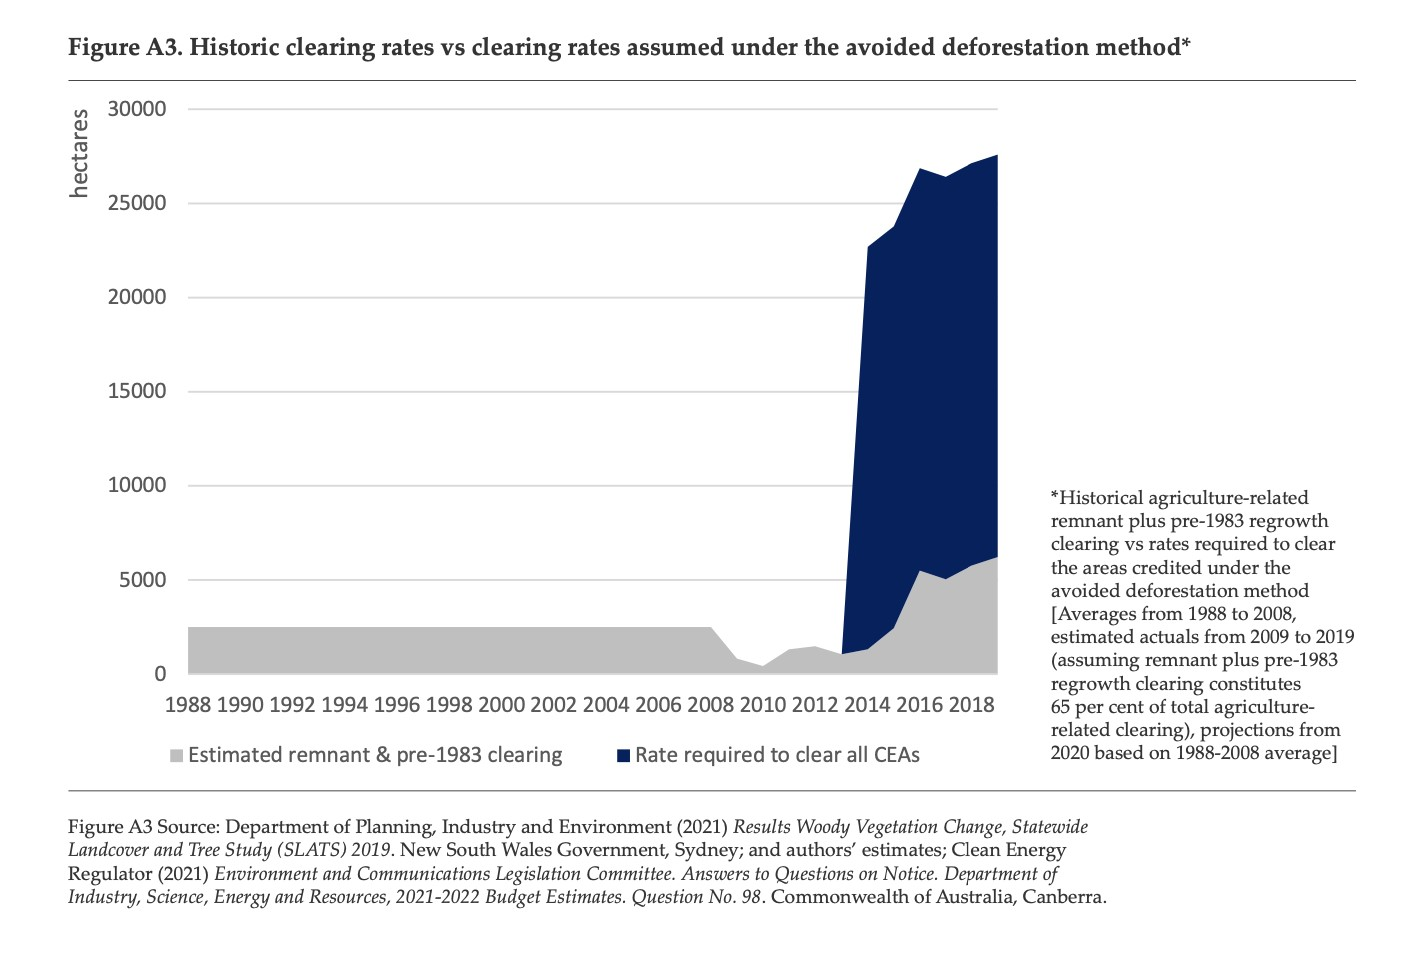 A graph showing clearing rates of about 2,500 hectares per year. Avoided deforestation sees a dramatic jump to about 27,500h.